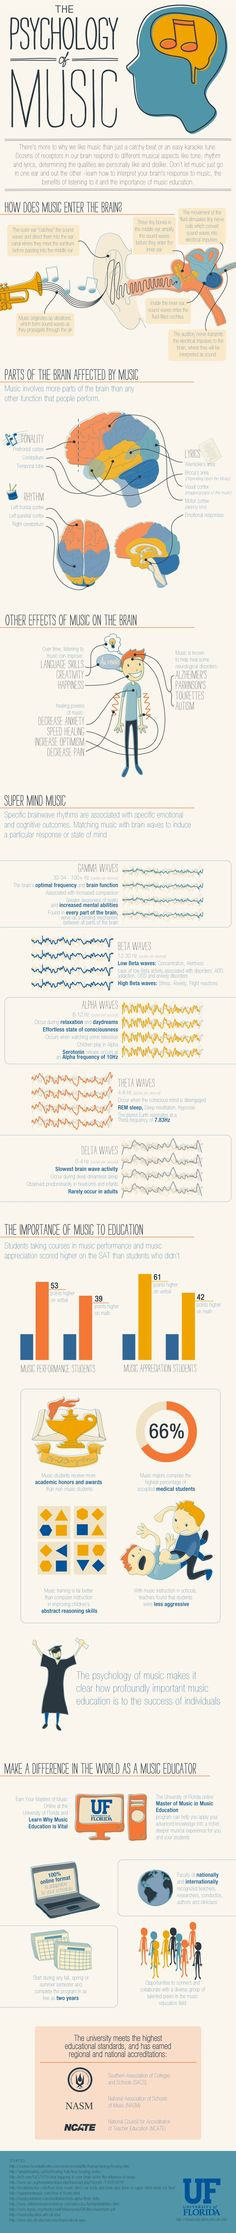 """Infographic about """"The Psychology of Music"""" - from University of Florida Musico terapia - psicologia della musica Elementary Music, Elementary Schools, Teaching Music, Teaching Tools, Teaching Biology, Teaching Class, Music Classroom, Music Teachers, Music Lessons"""